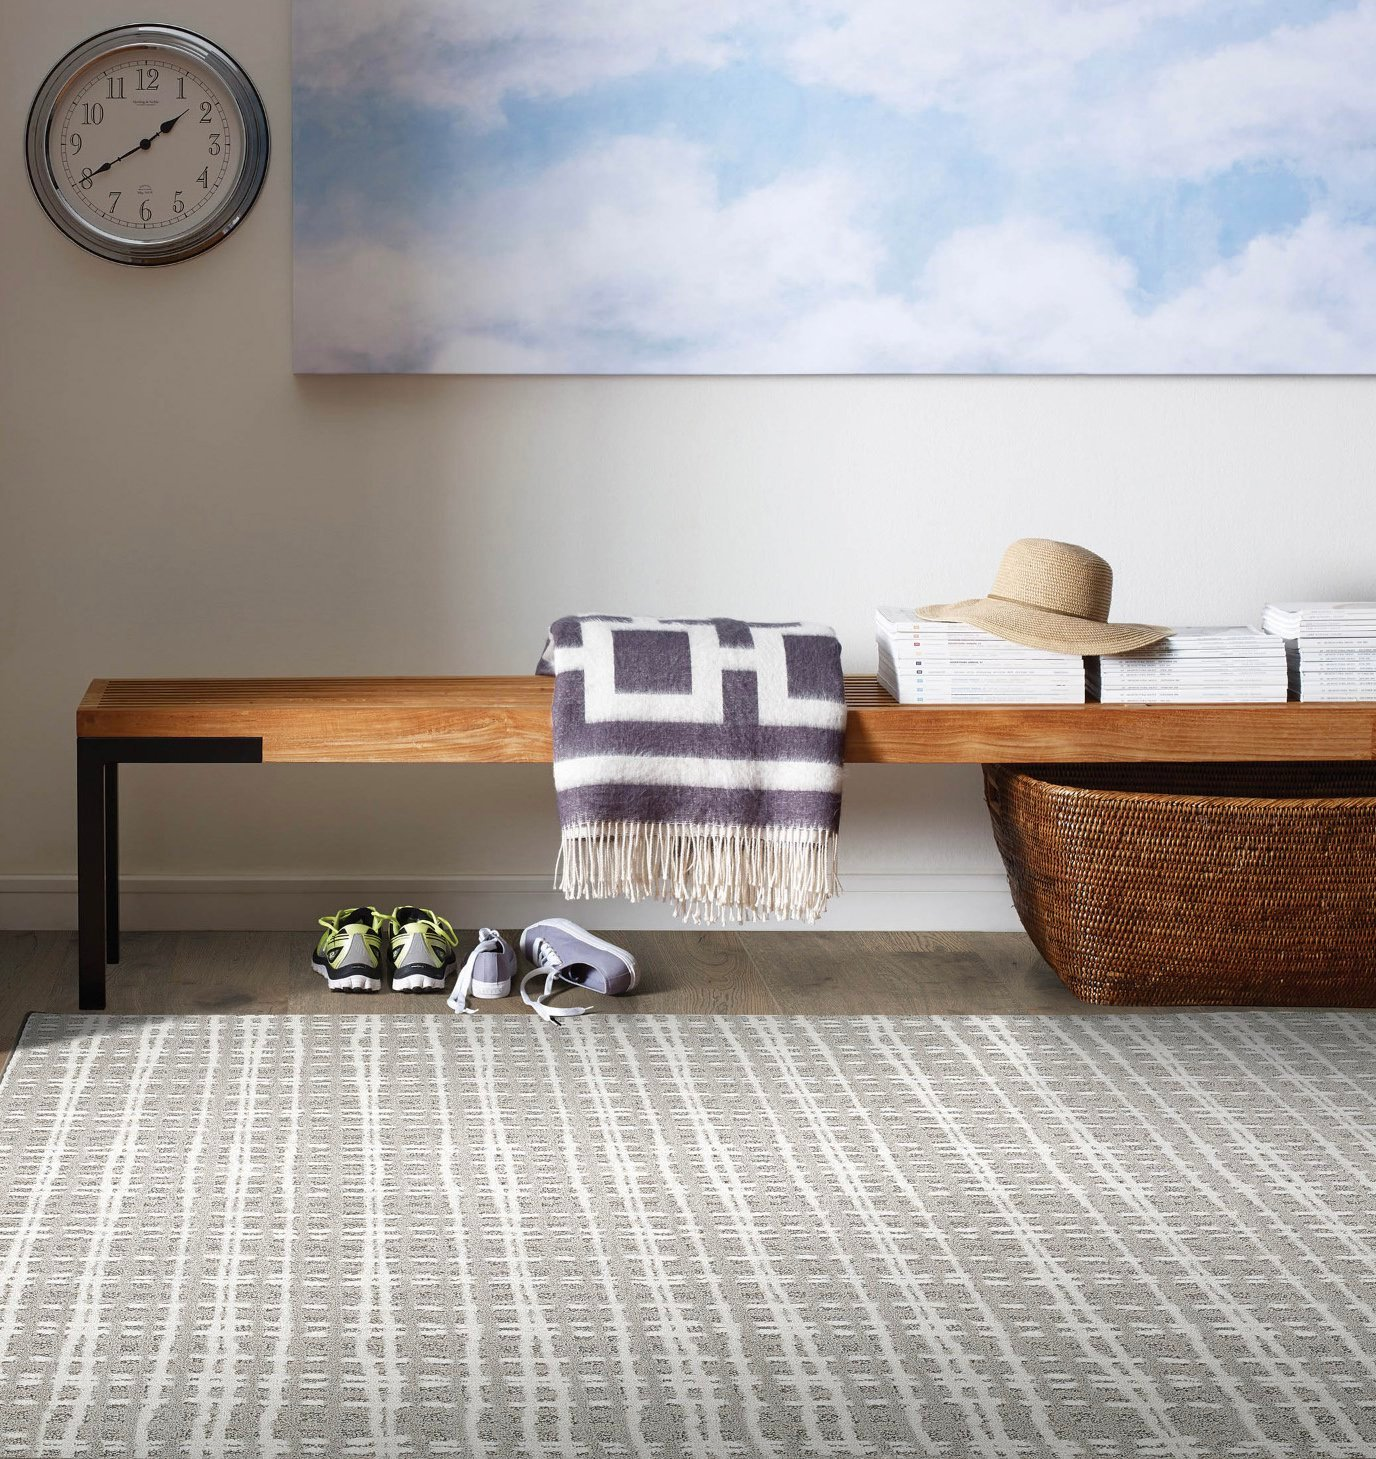 Do Area Rugs Work Over Carpet: How To Lay An Area Rug Over Carpet